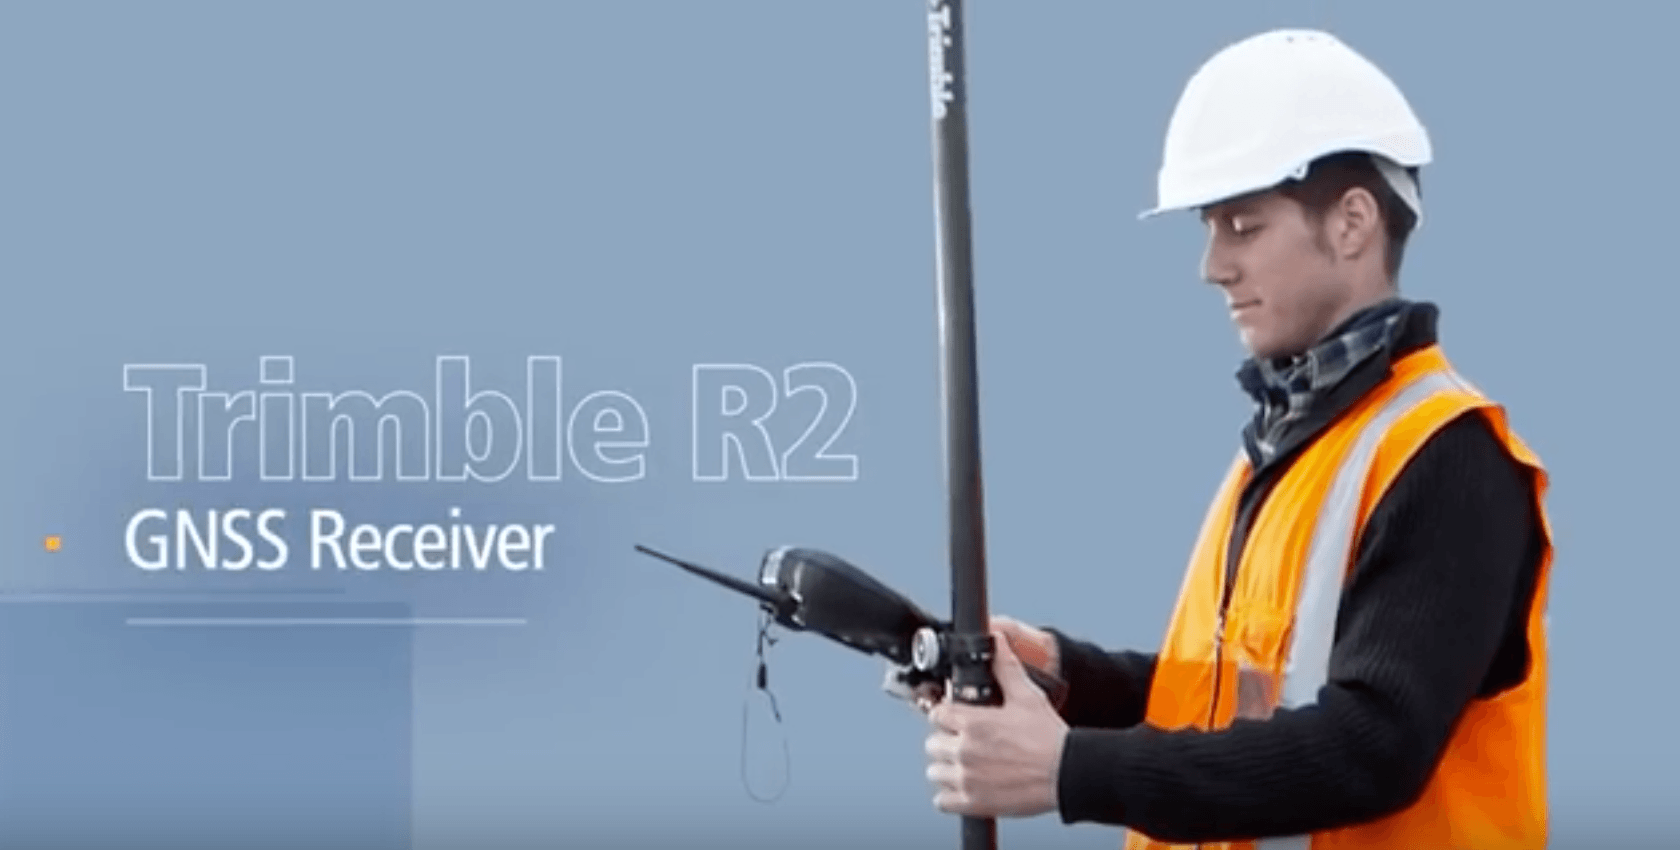 Trimble R2 GNSS Receiver Overview Video